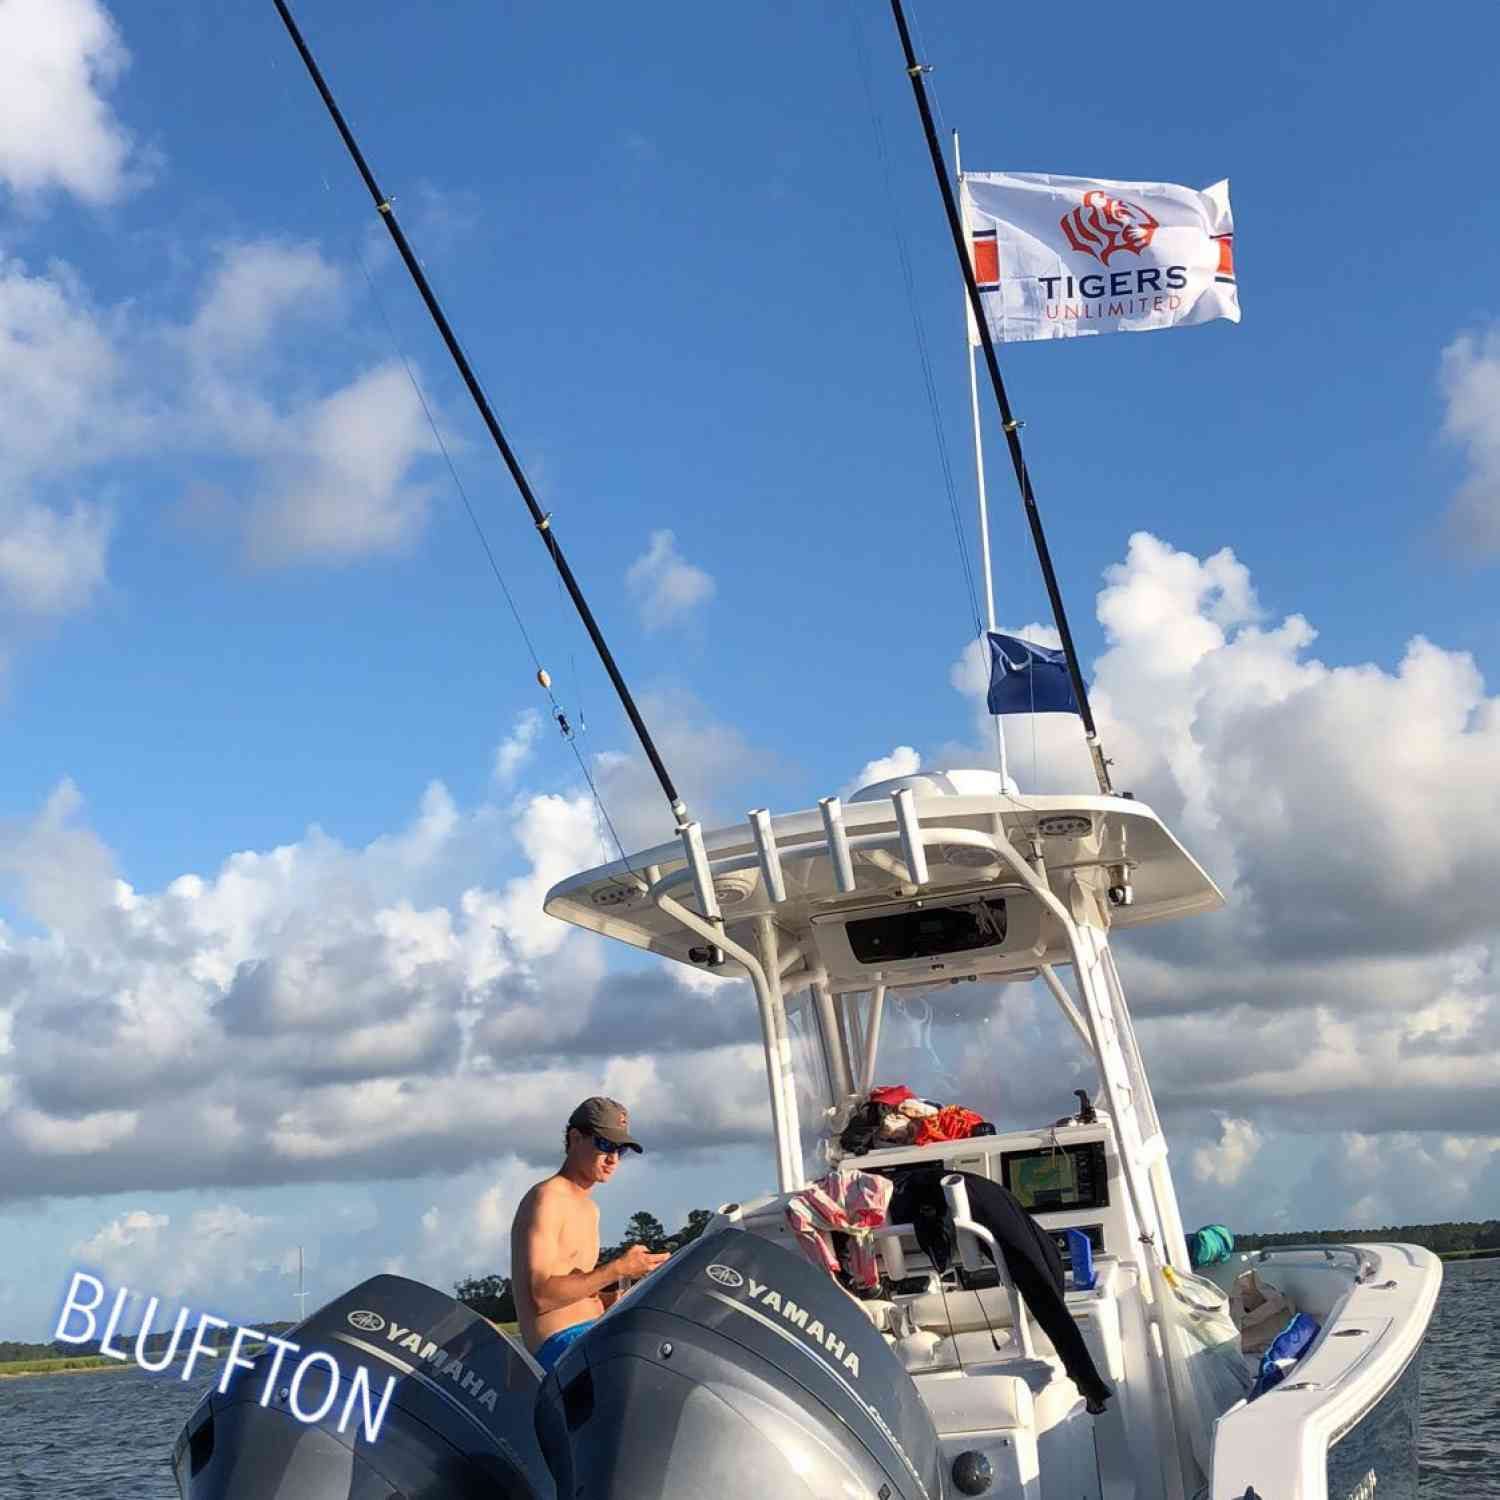 Title: 4th of July Sandbar action - On board their Sportsman Open 252 Center Console - Location: Bluffton, SC. Participating in the Photo Contest #SportsmanSeptember2018